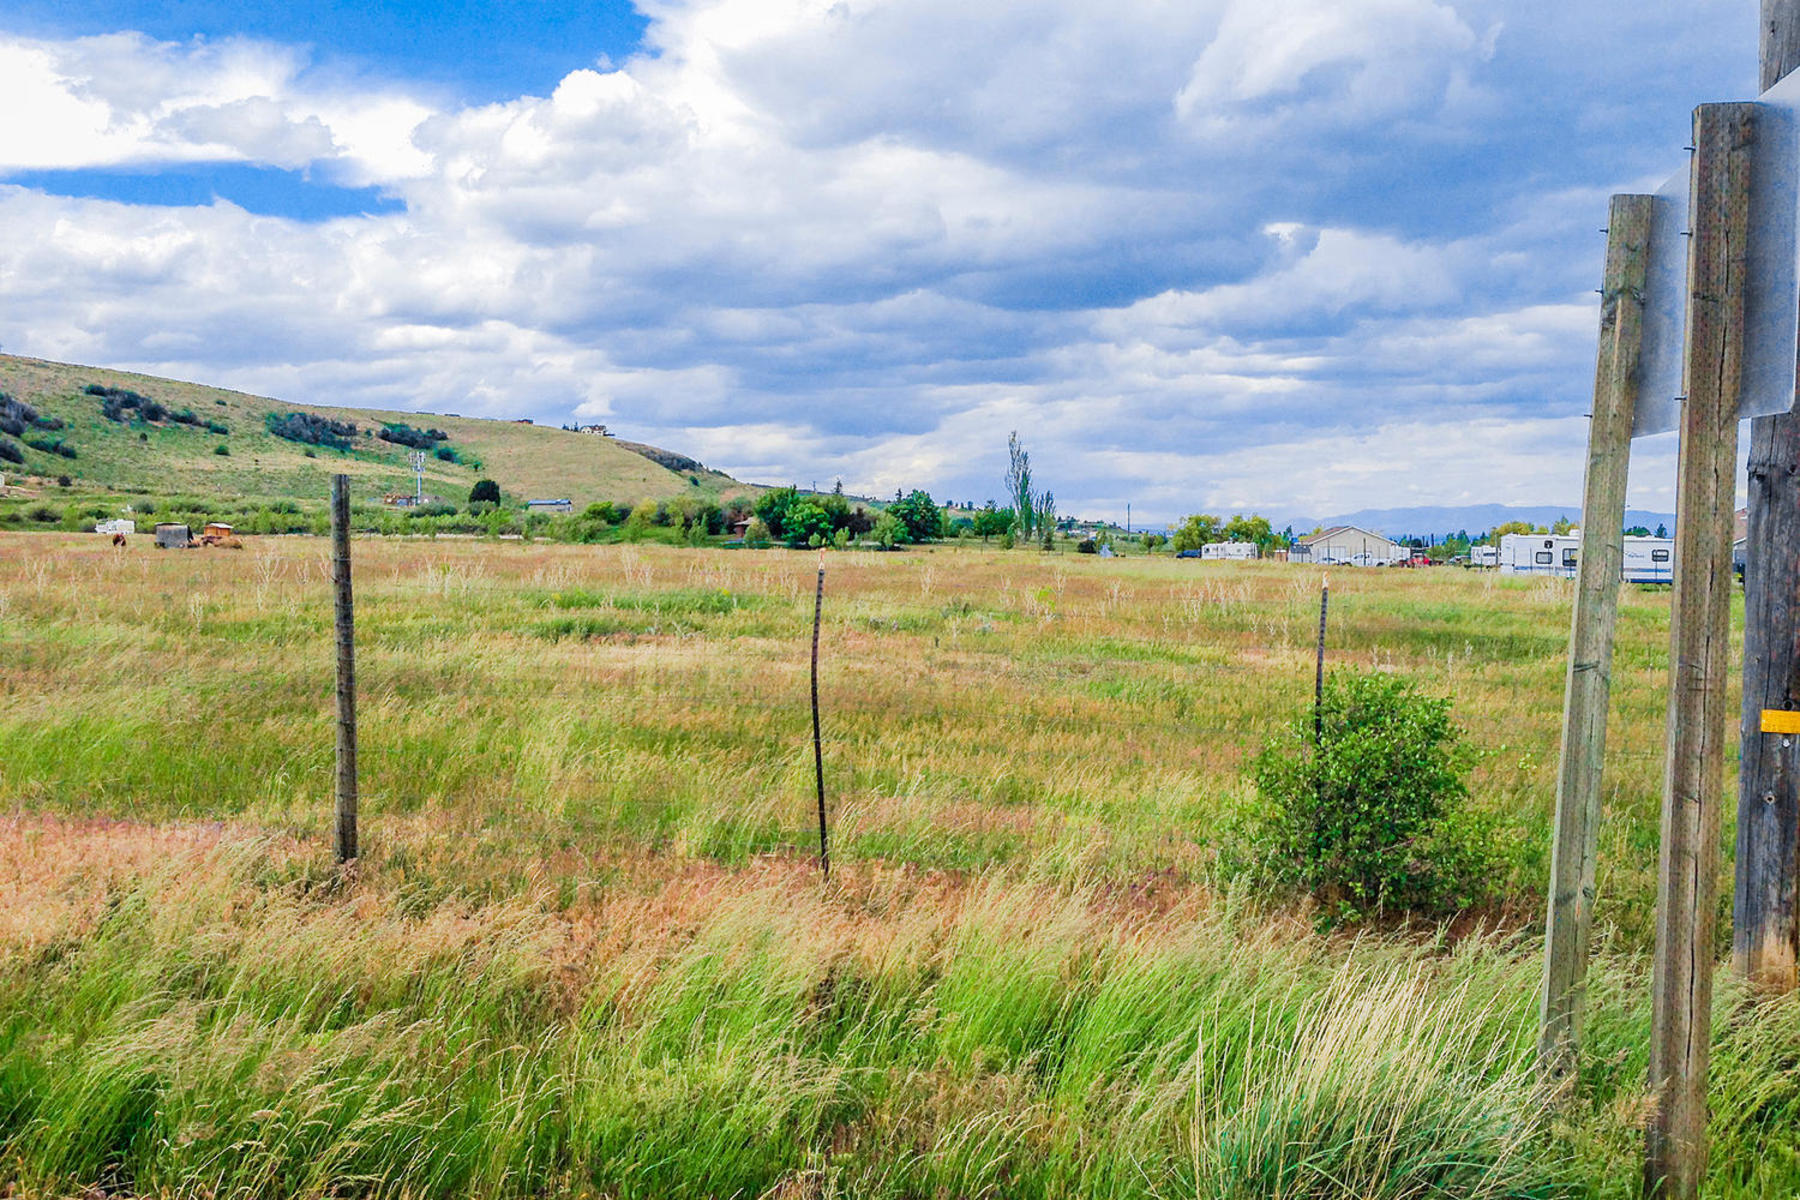 Land for Sale at Amazing Investment Opportunity in the Heart of Garden City 375 W Highway 89 State Rd Lot 2, Garden City, Utah, 84028 United States